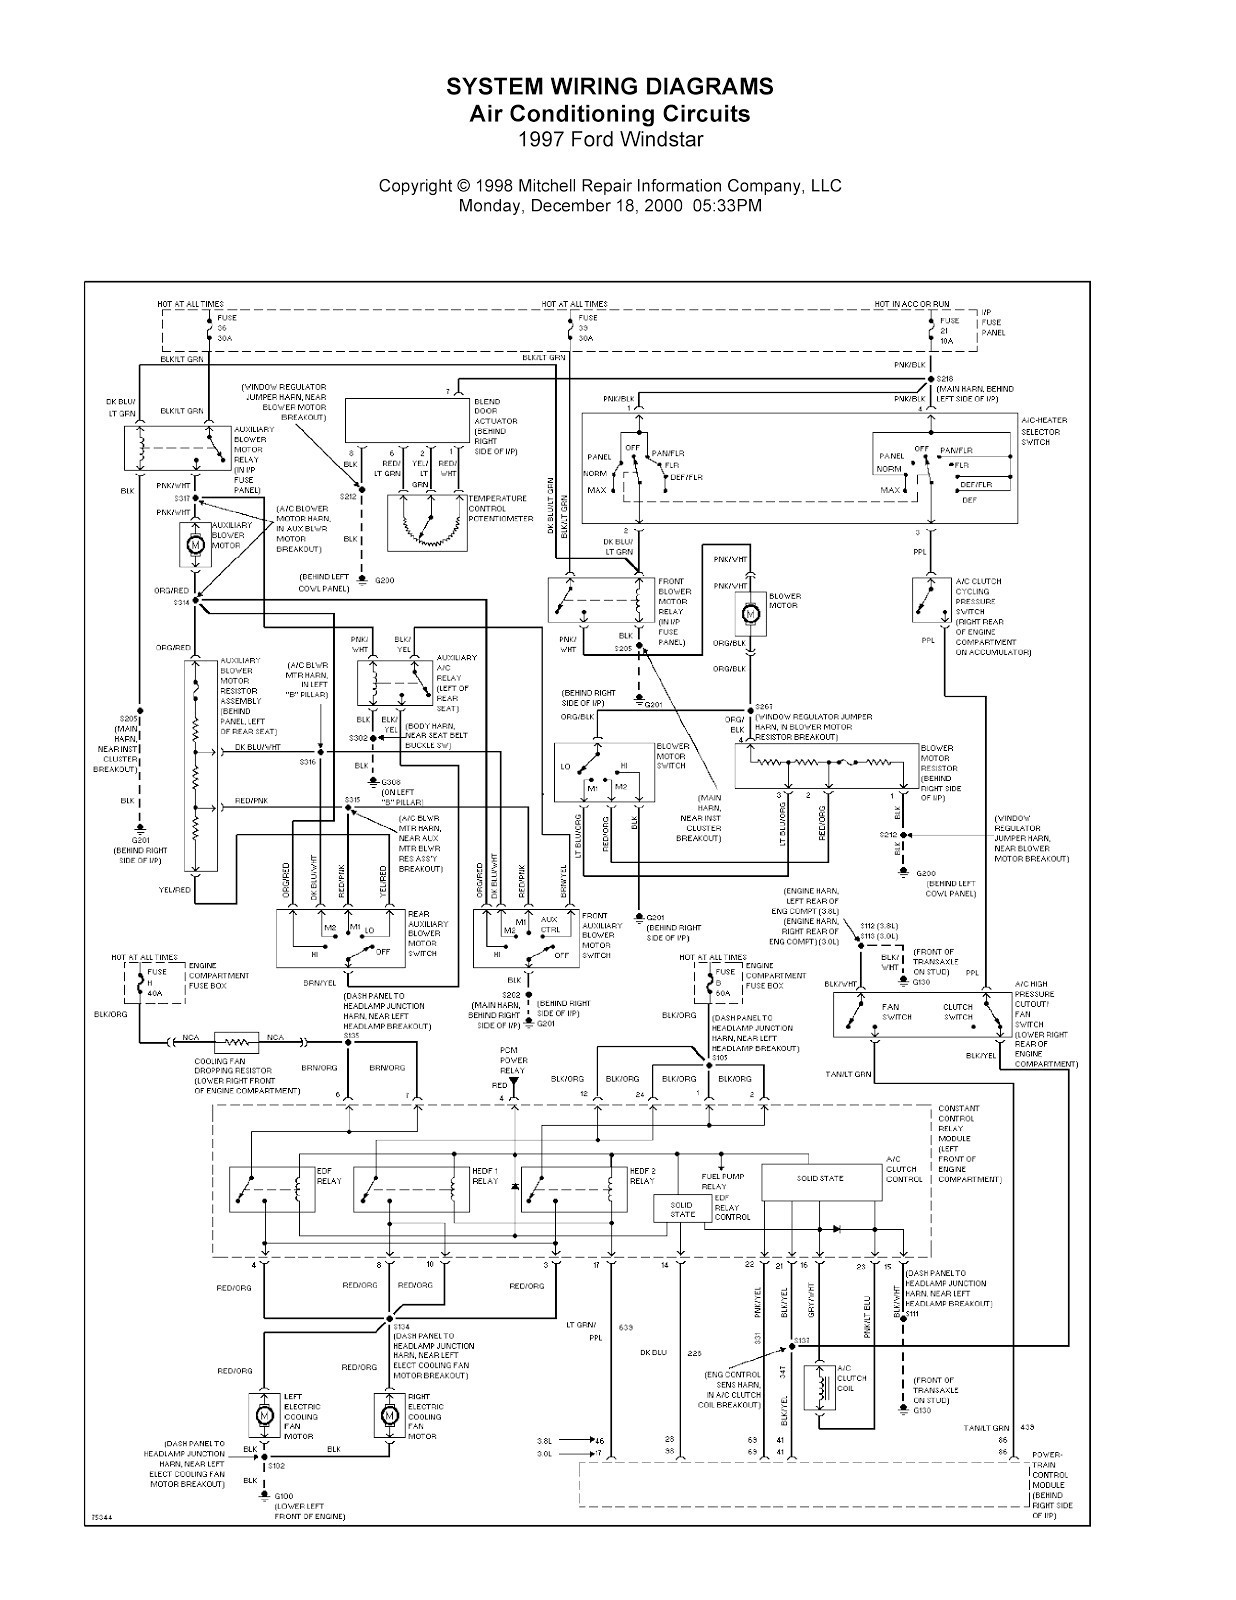 Ford Windstar Power Window Wiring Diagram